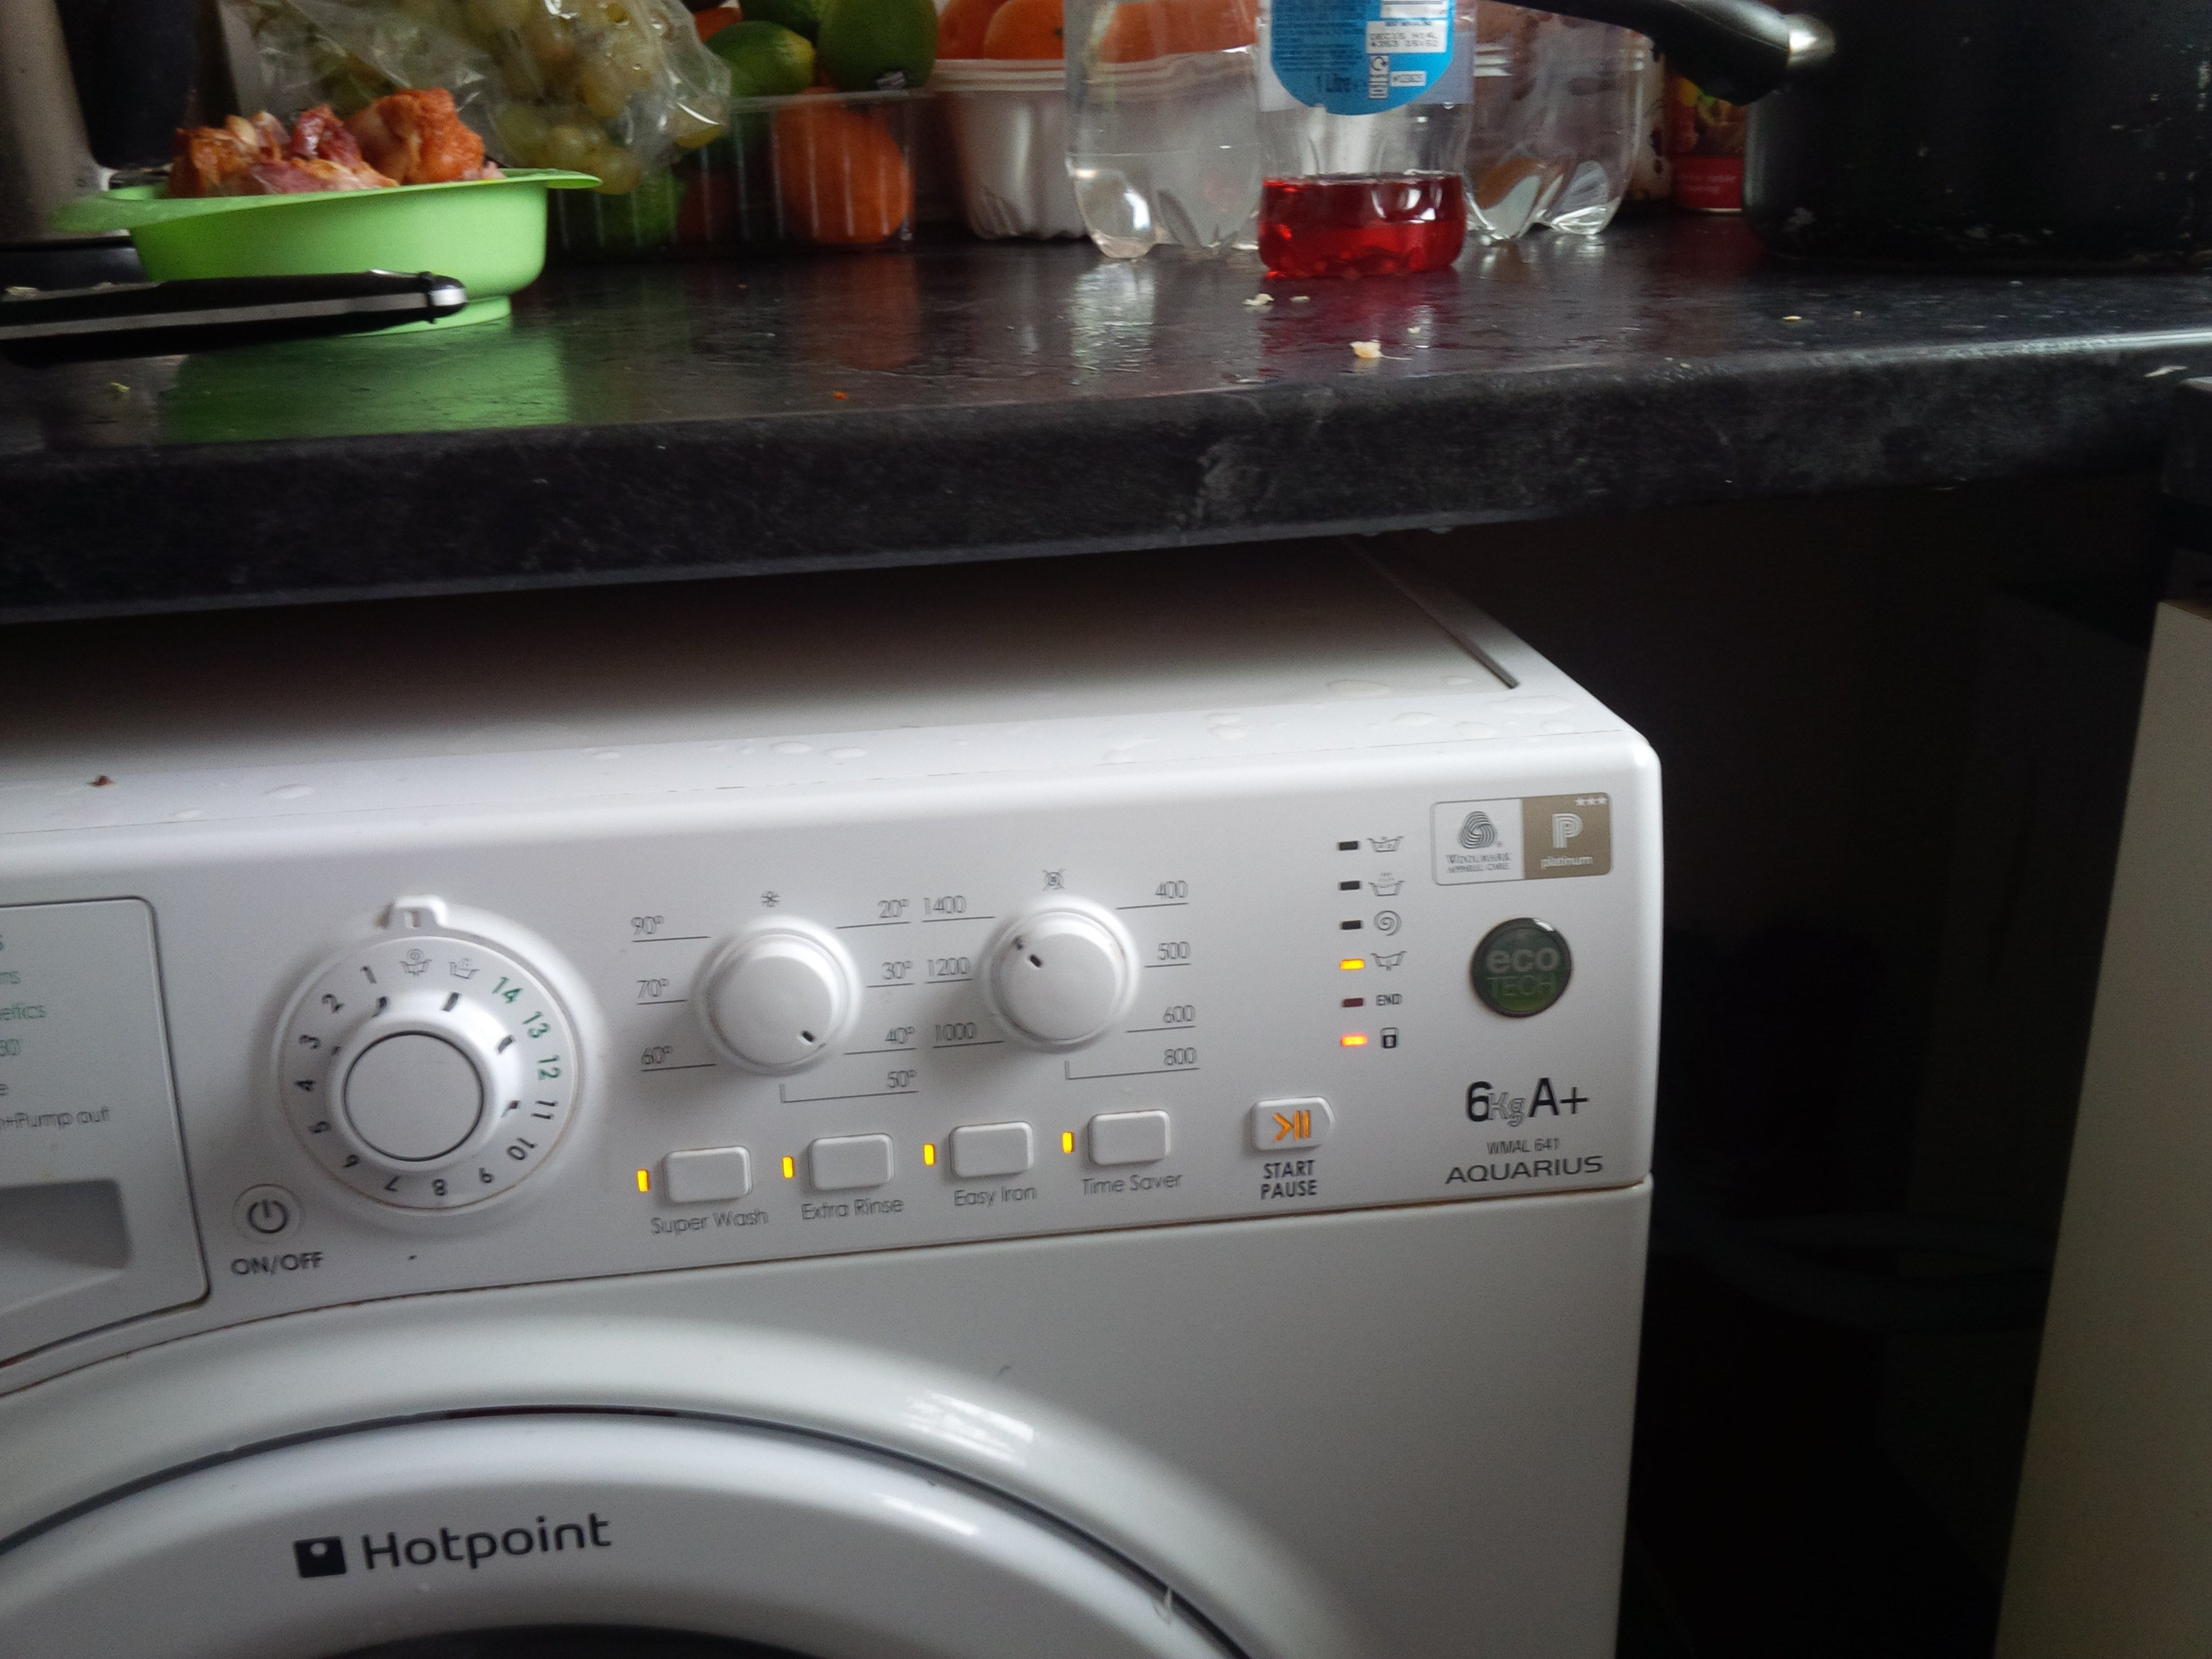 Hotpoint Wf860 Error Codes F05 Aquarius Washing Machine Wiring Diagram Ive Removed All Parts And One Issue That Isnt As Complete Id Like I Ran A Very Lengthy To Live With The Usb Wireless Adapter